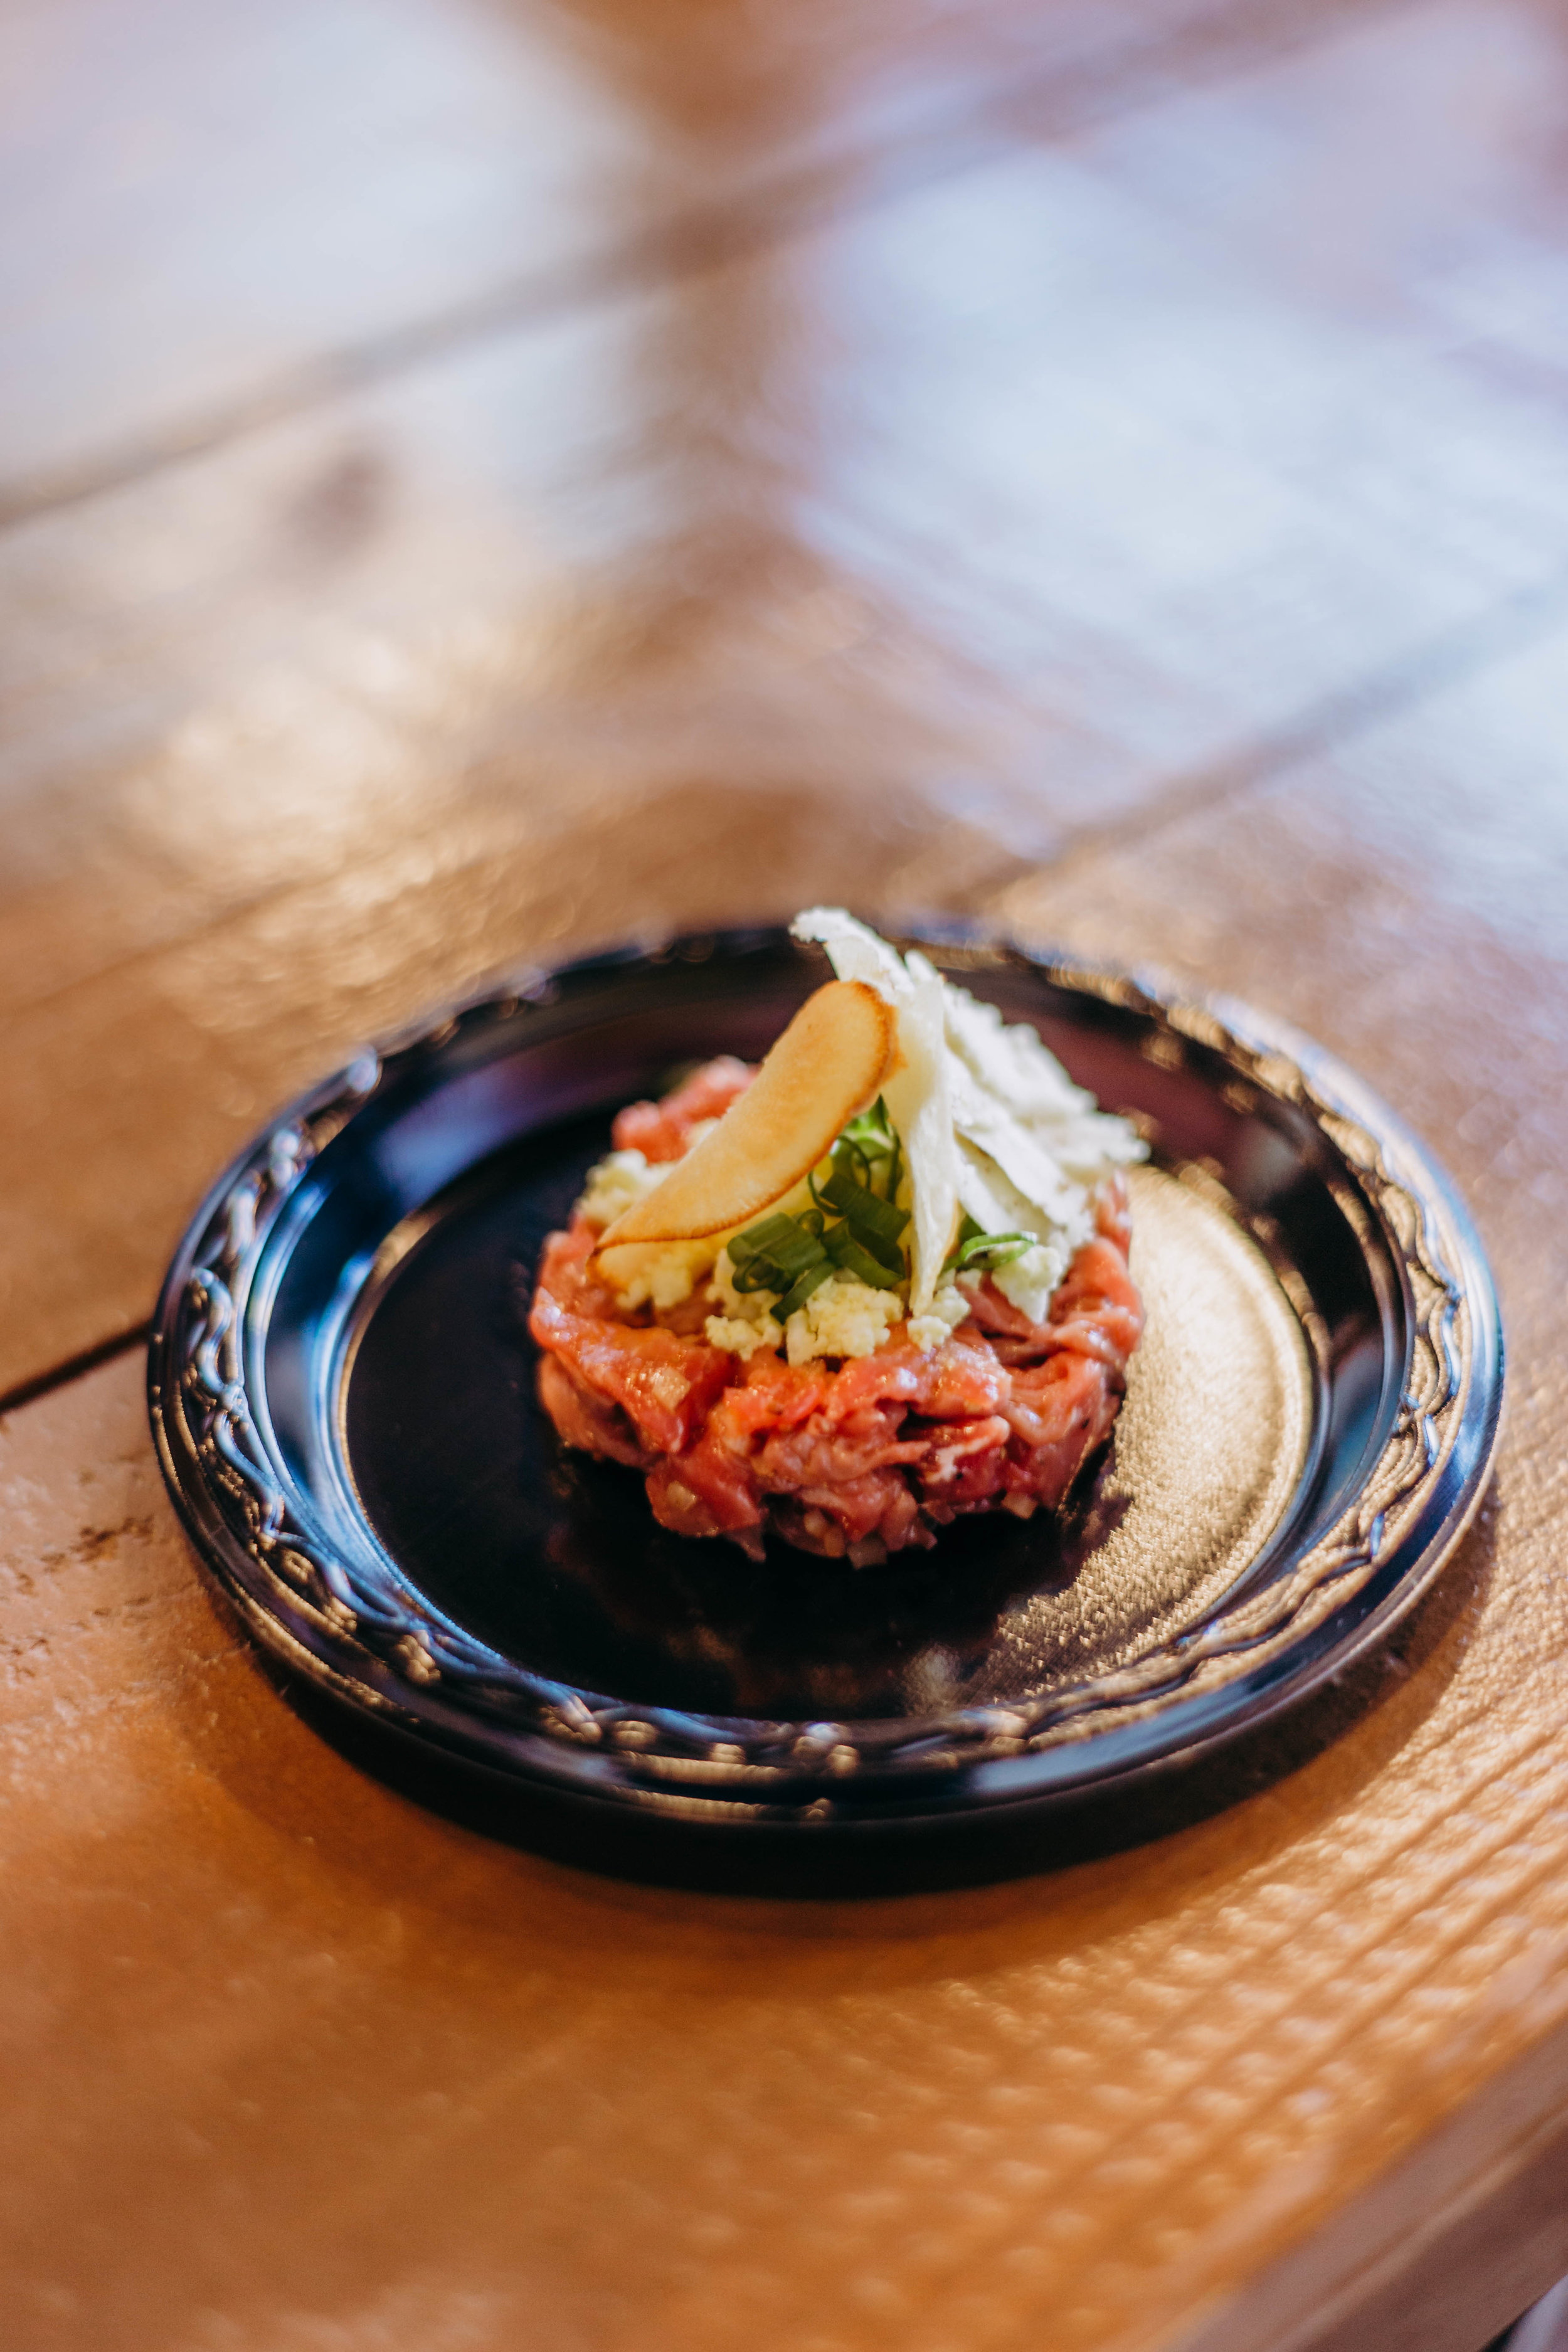 The first course - Beef Tartar with Herbs and Boiled Egg paired with Red Dragon Cheese. Photo by Jennifer Meza.